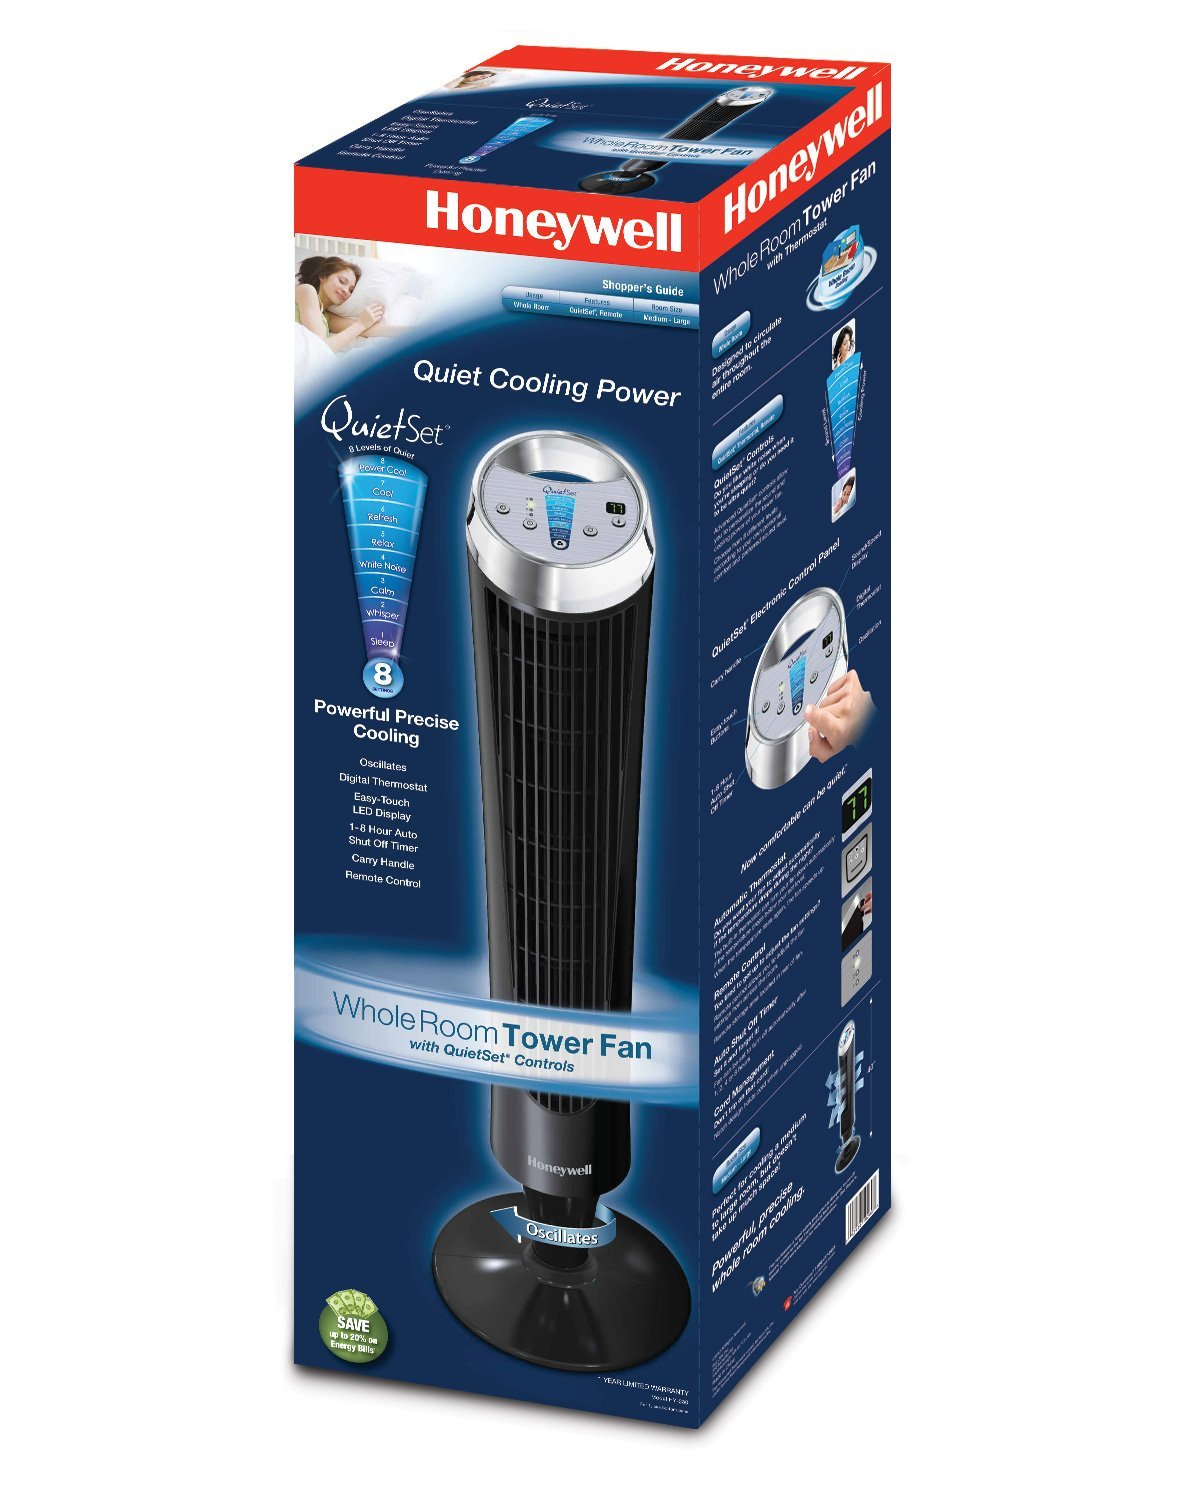 Honeywell QuietSet Whole Room Tower Fan - Black, HY-108